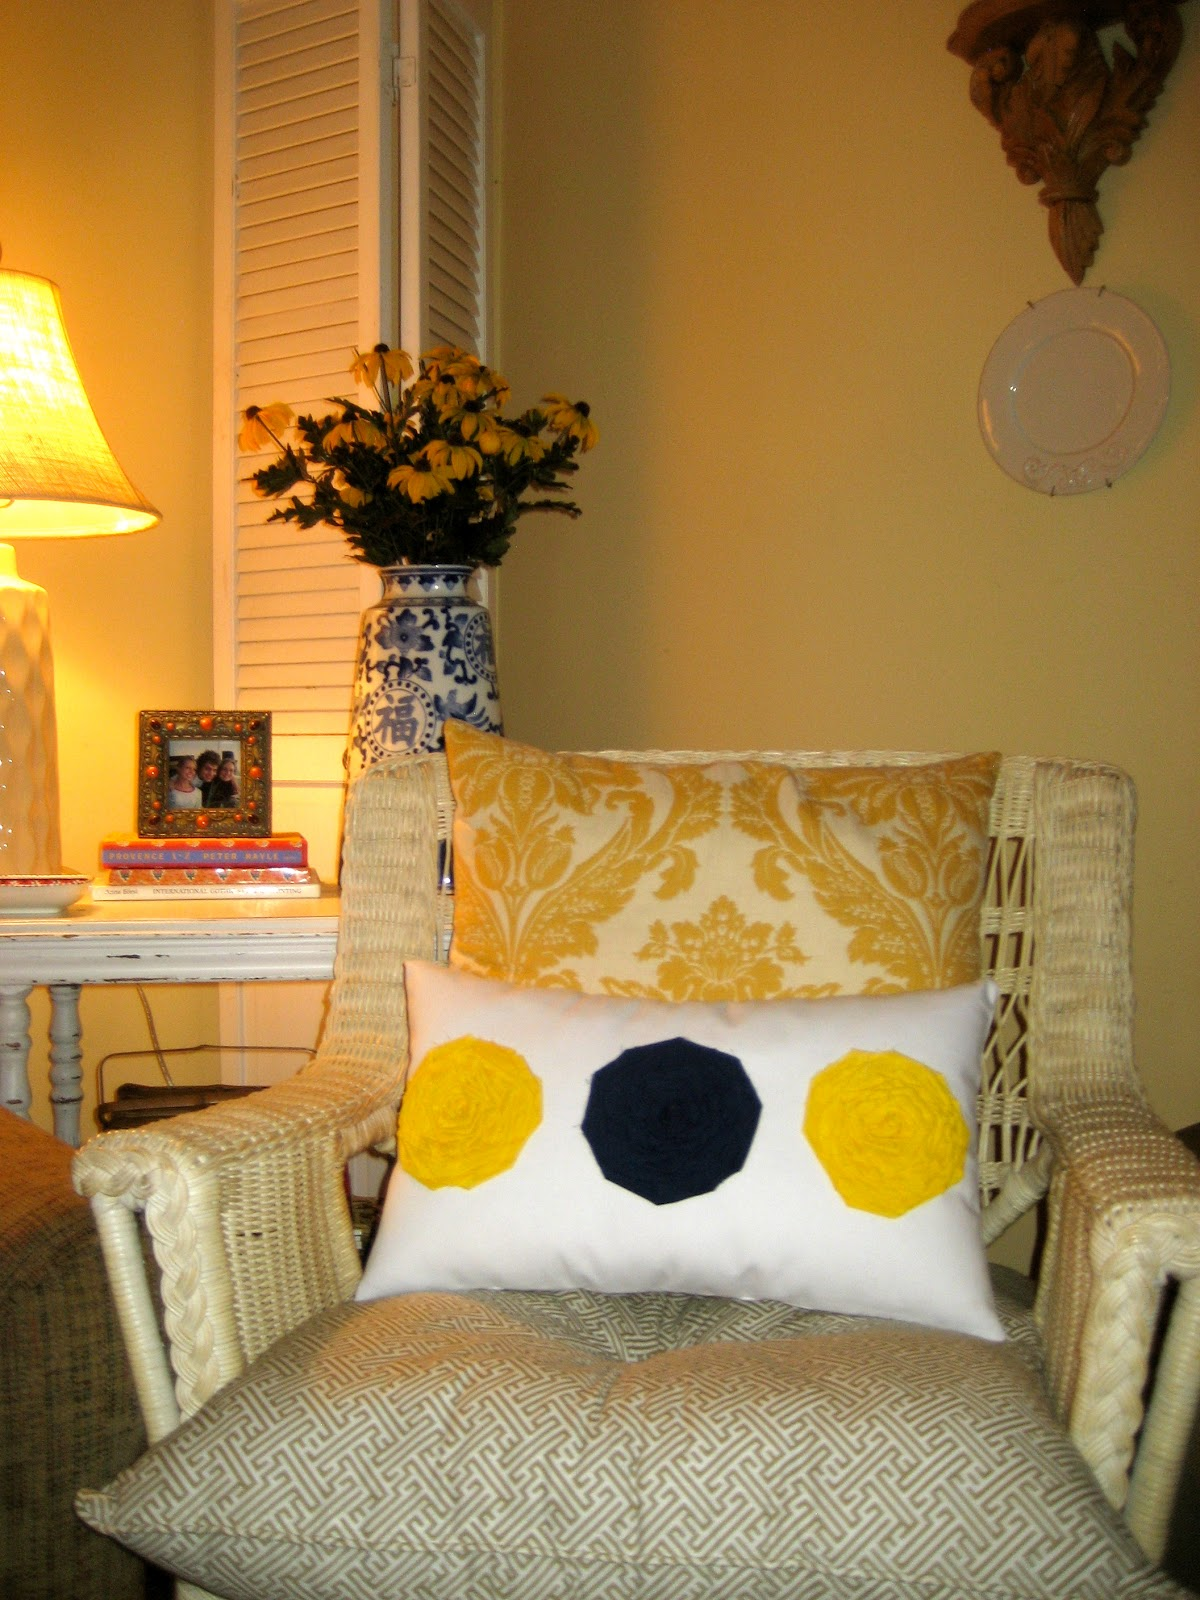 Graceadkinsdesigns Yellow Fabric Flowers With Navy Blue Center